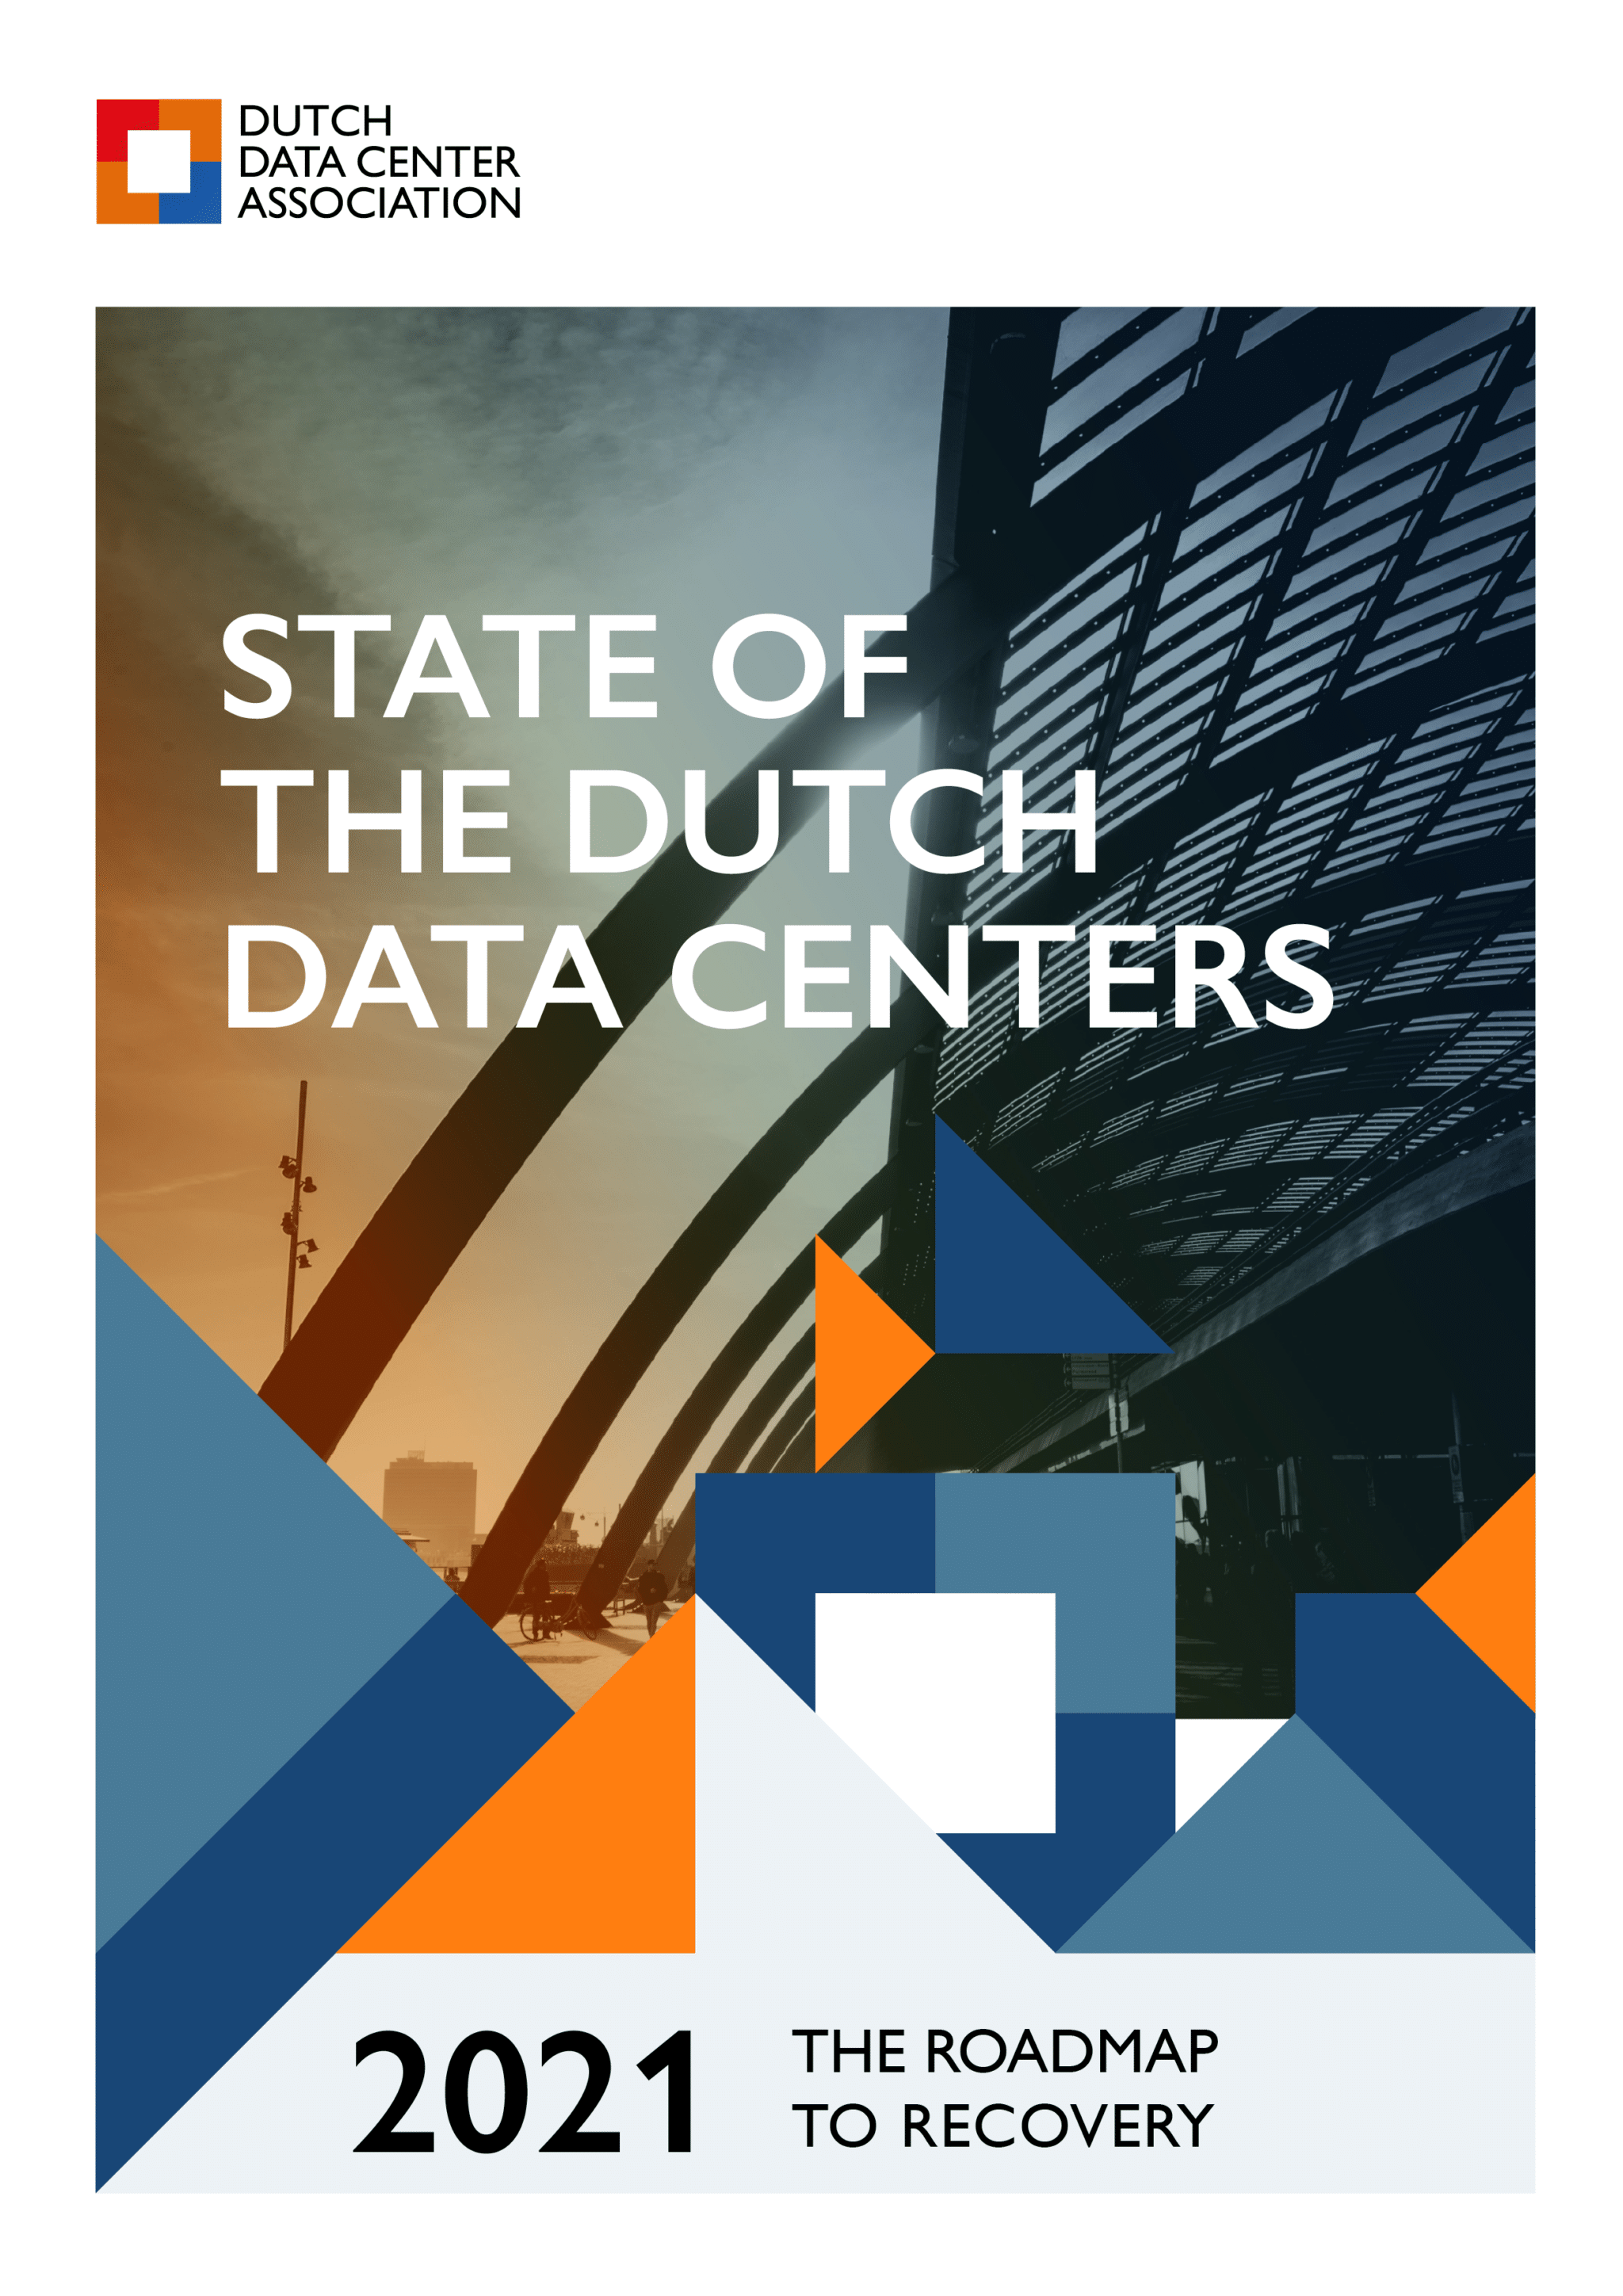 State of the Dutch Data Centers 2021